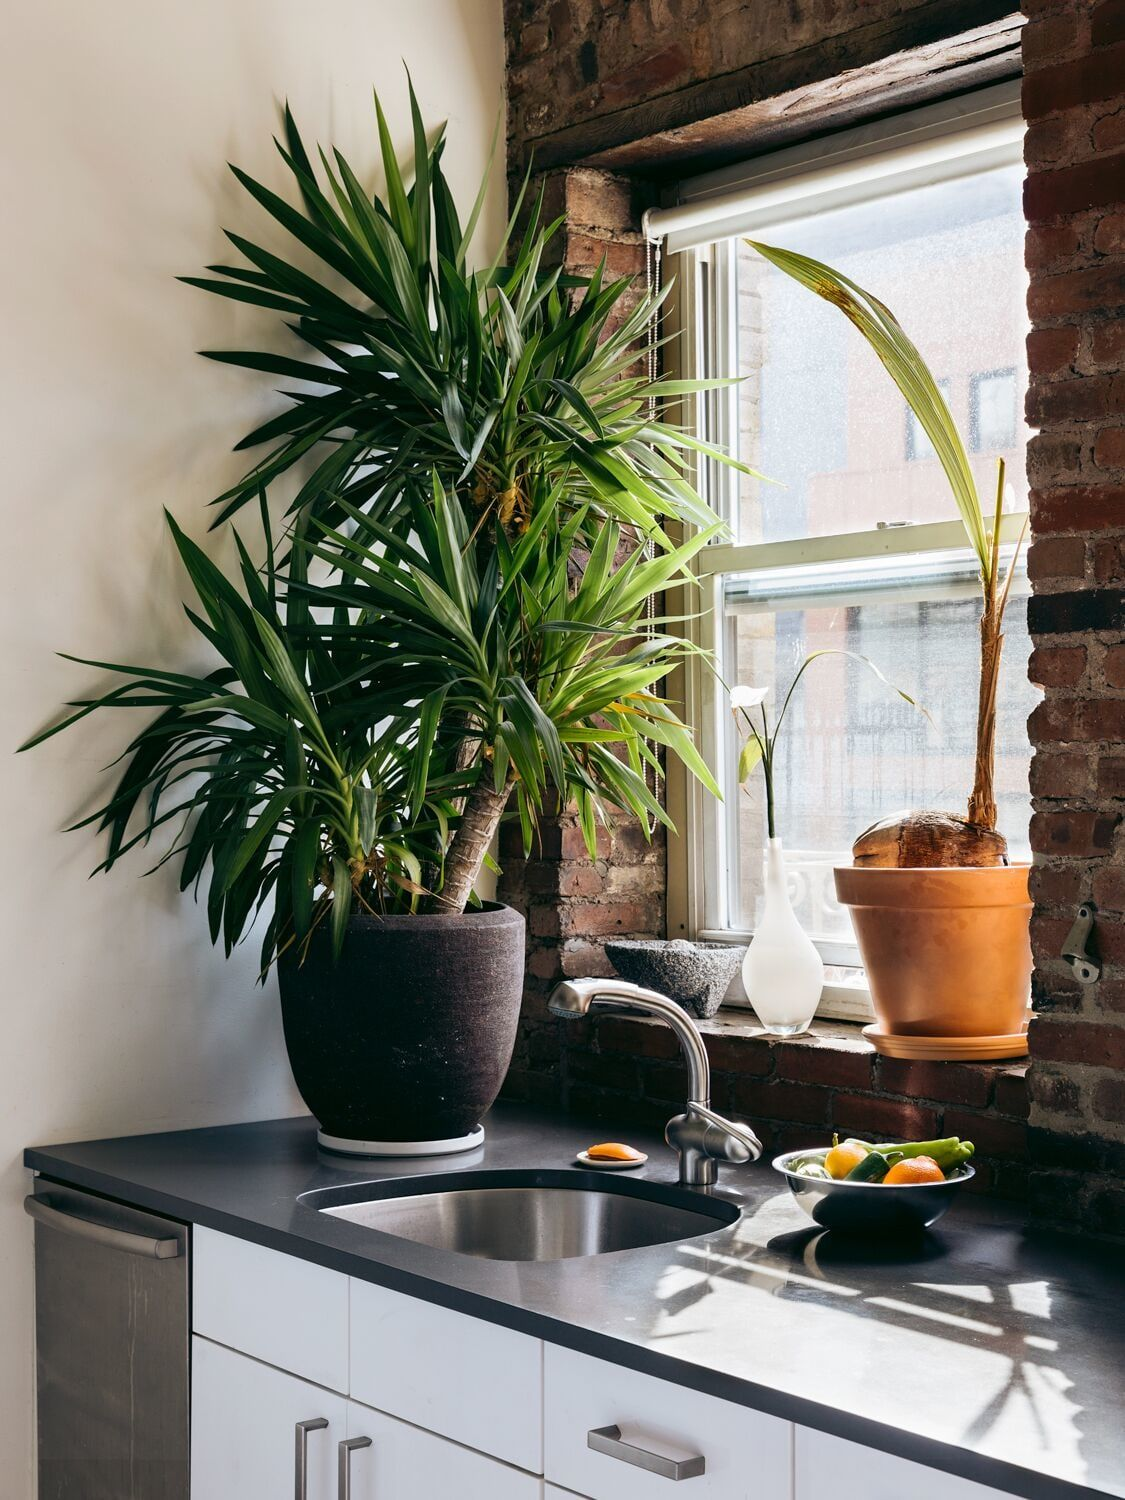 10 Best Kitchen Plants to Enliven Your Cooking Space